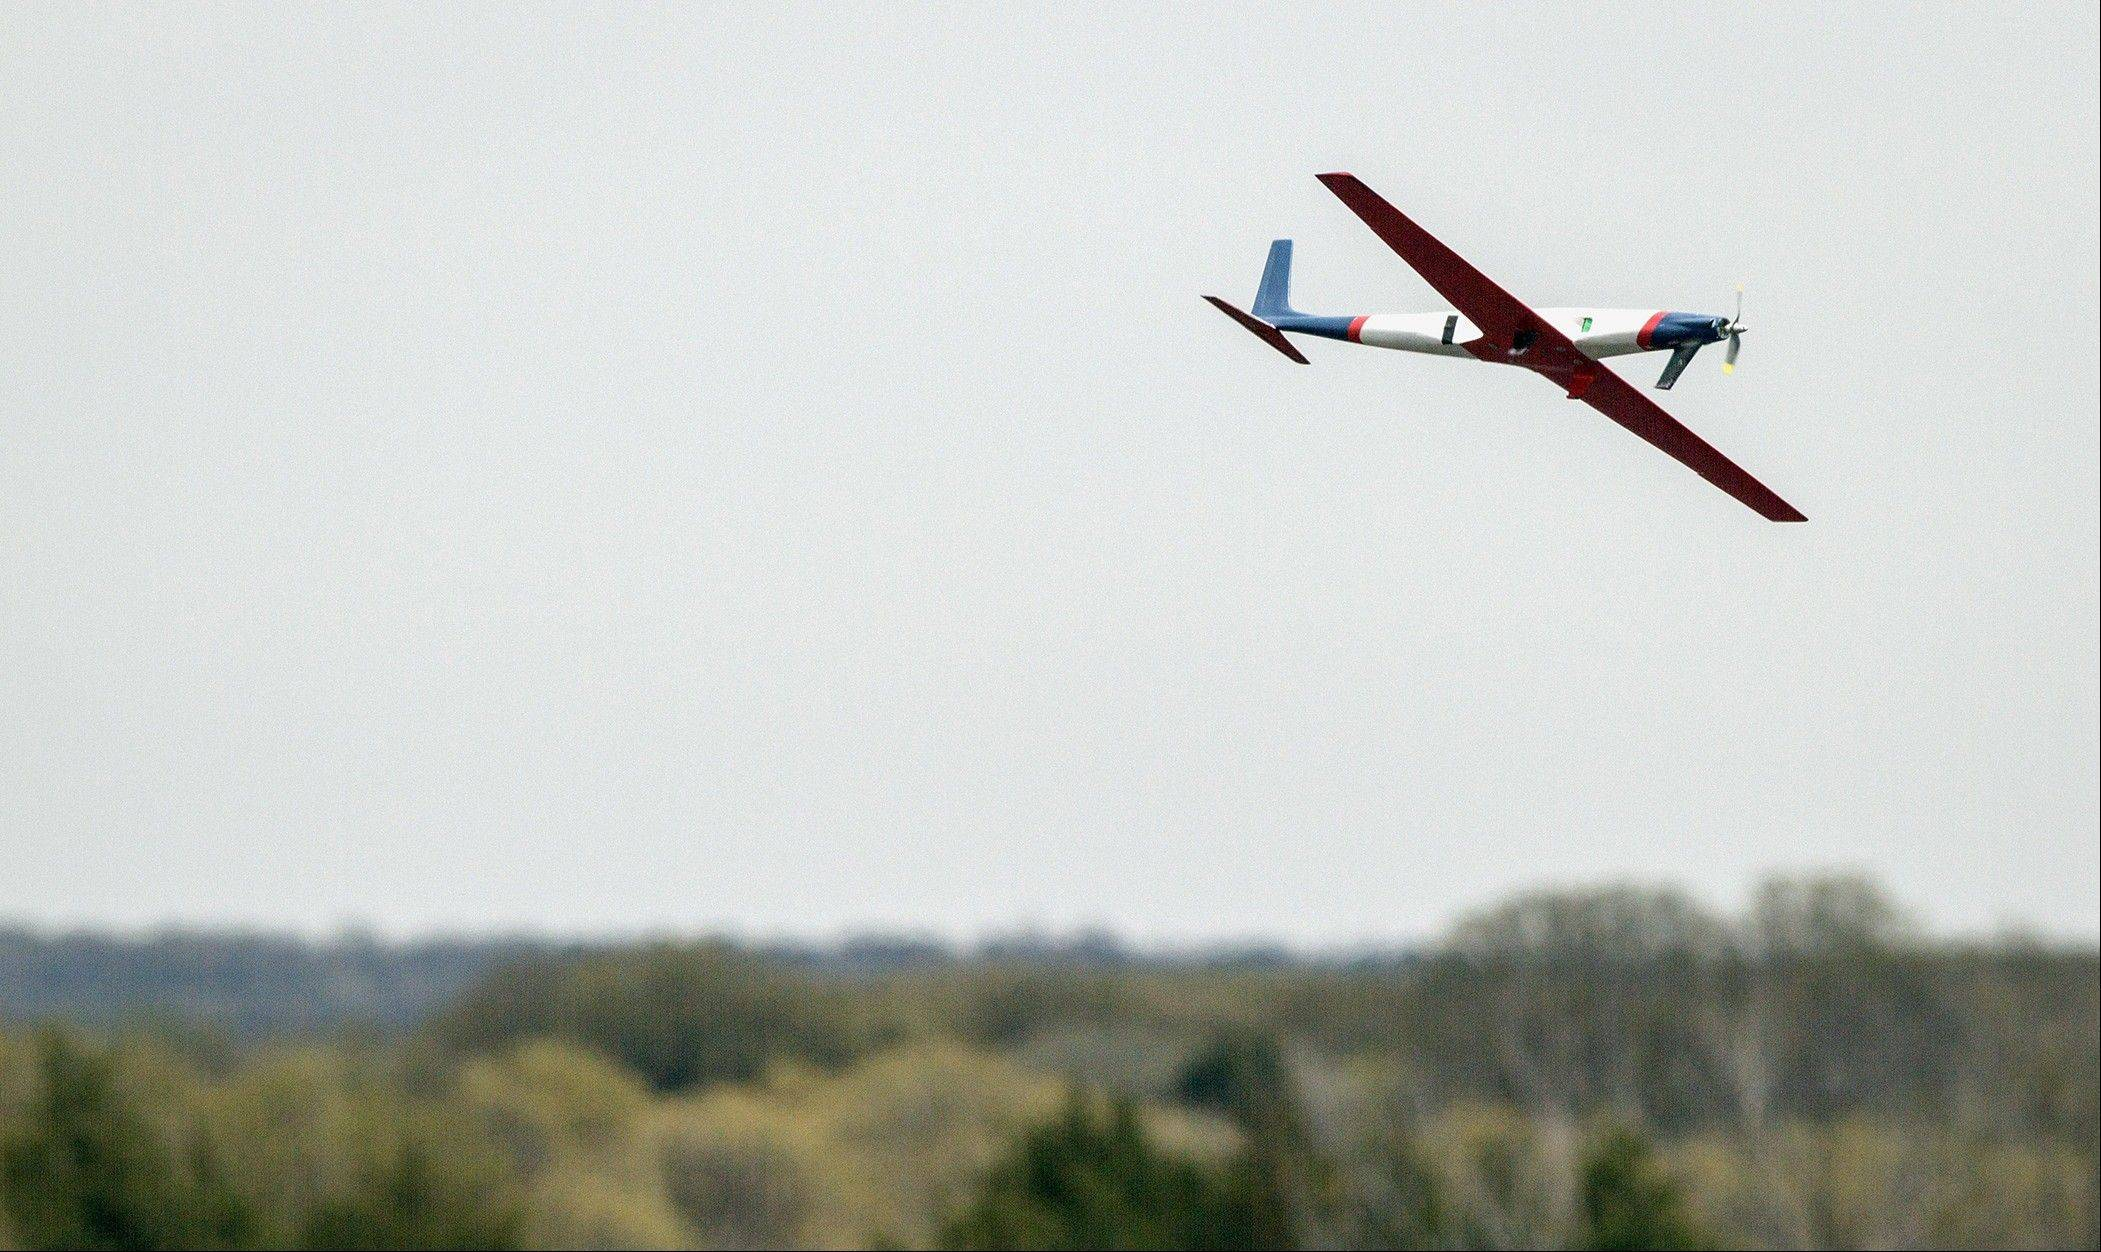 Team Black�s airplane takes off during SpeedFest III, in Stillwater, Okla. Researchers at Oklahoma State University are designing and building sleek, Kevlar-reinforced unmanned aircraft to fly into the nation�s worst storms.